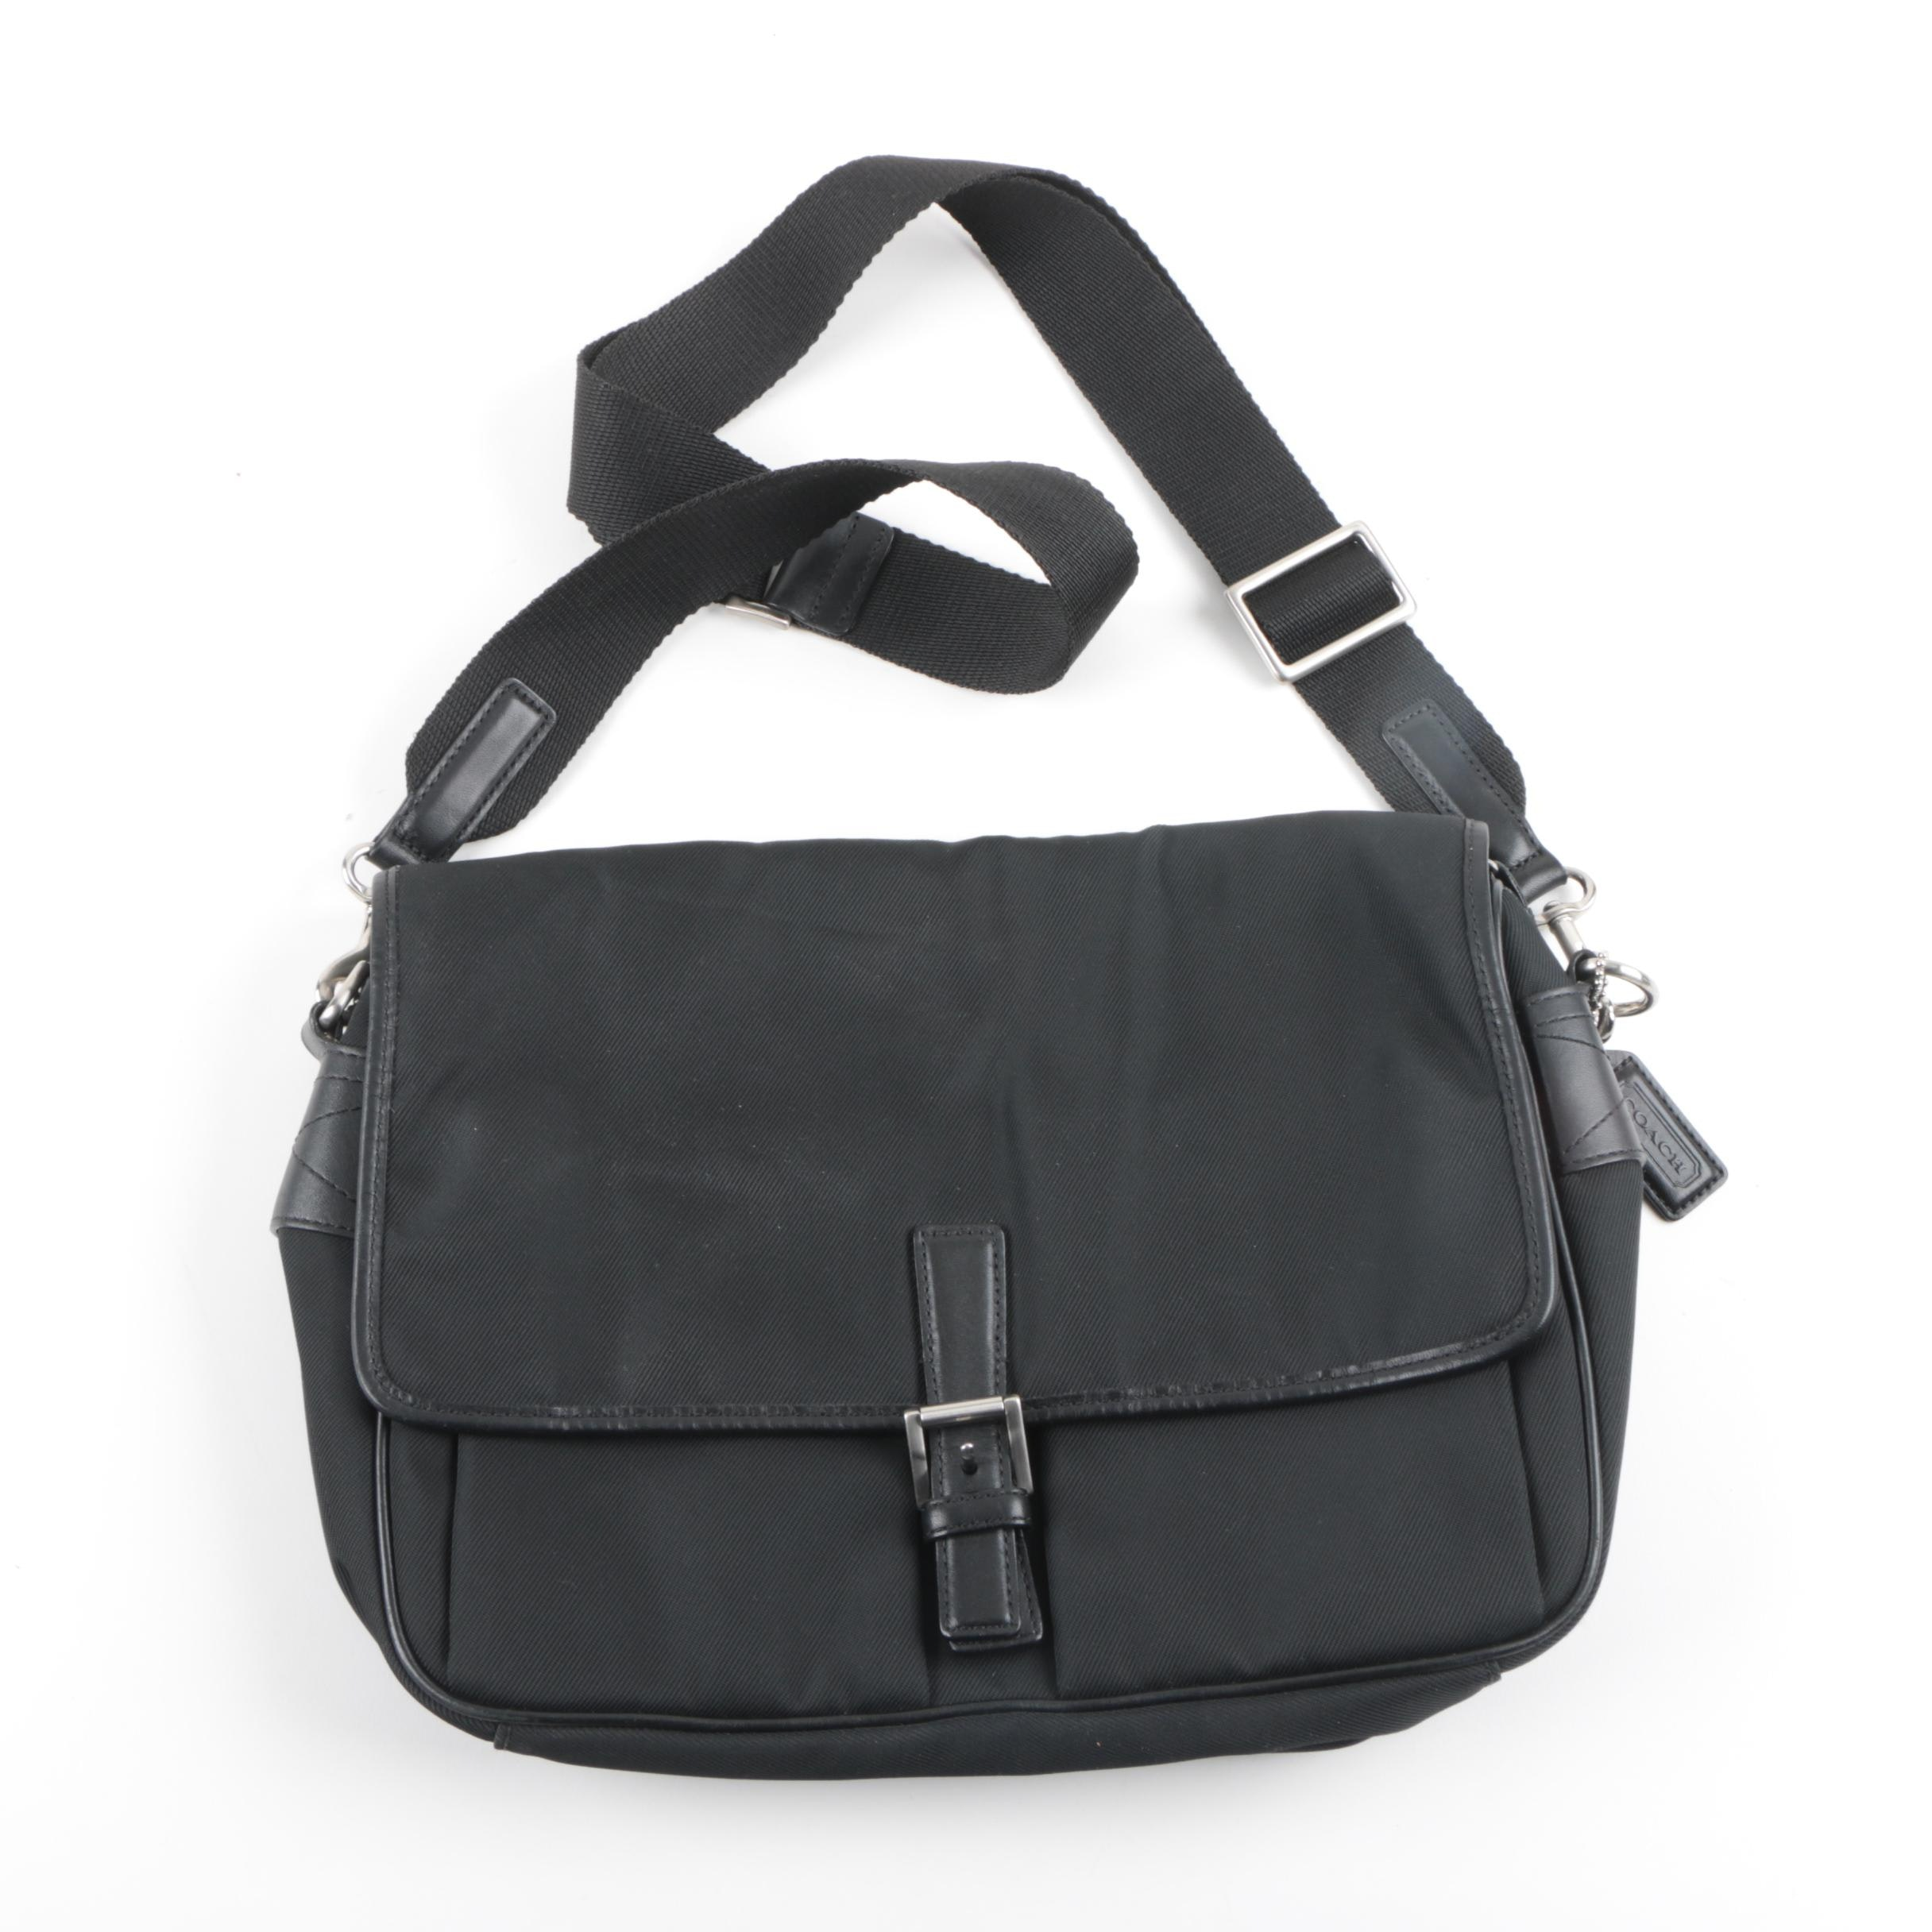 Coach Black Nylon and Leather Messenger Bag